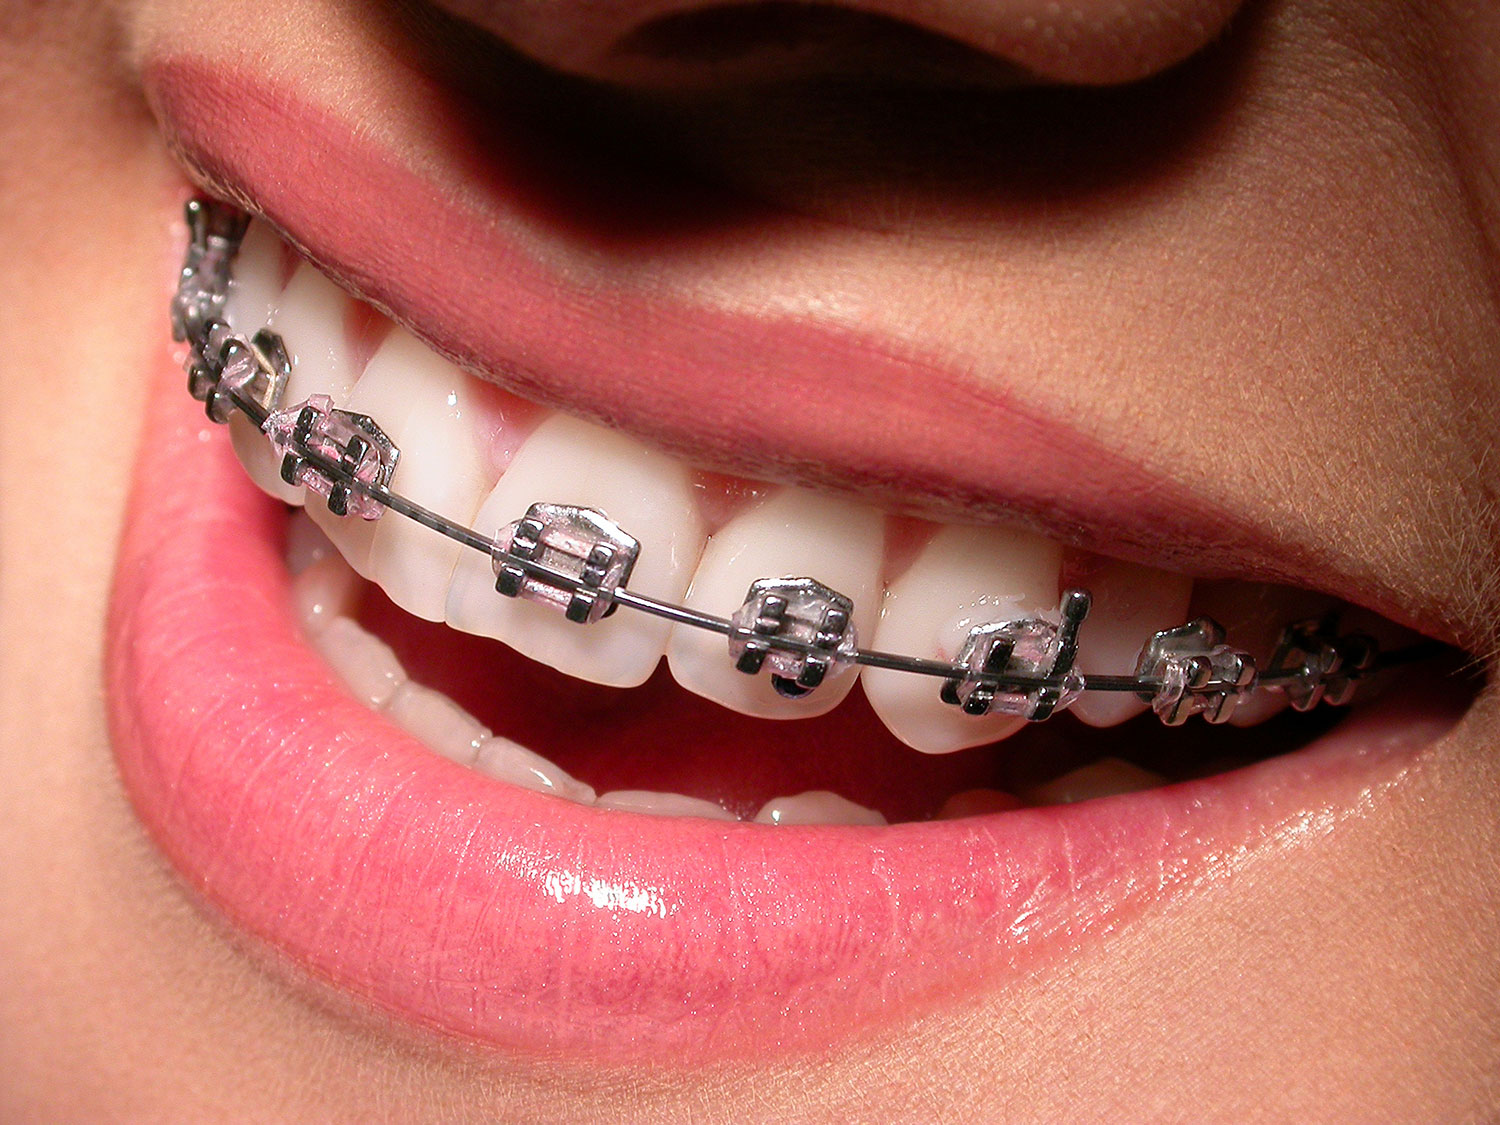 orthodontics nu smile dental dentists east london